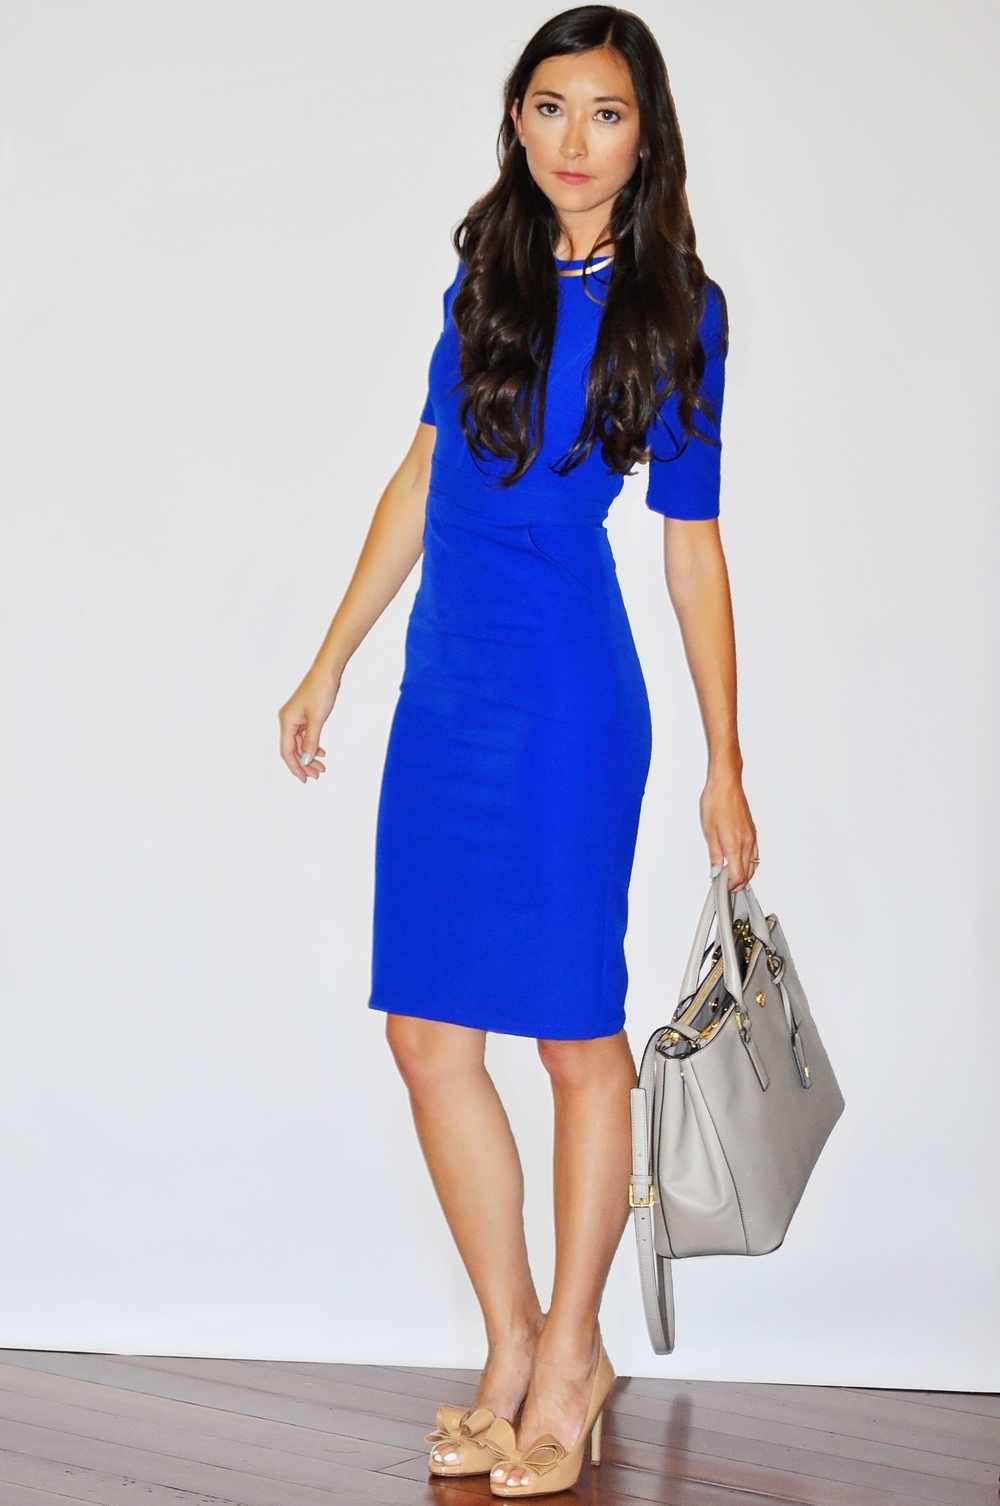 blue-sheath-dress.jpg